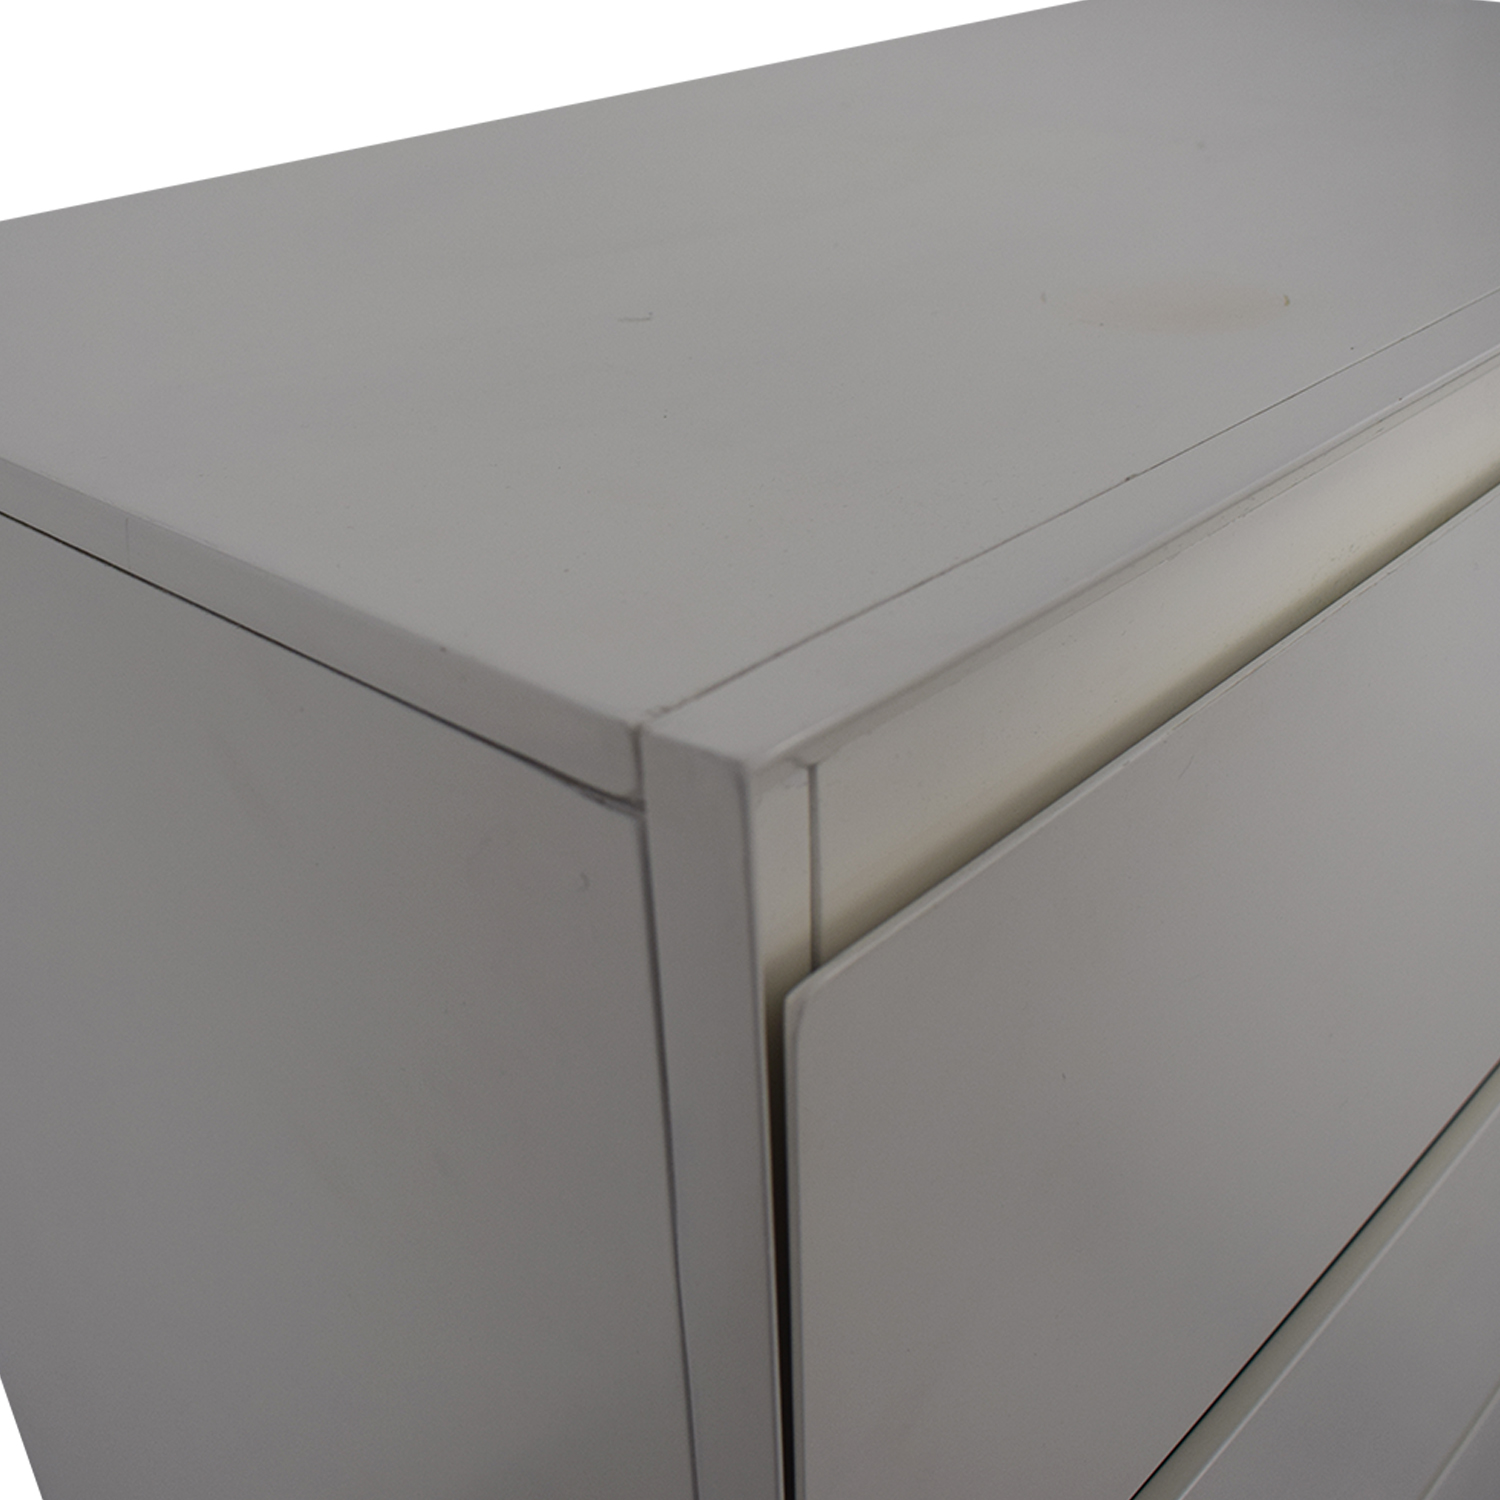 Furniture of America Furniture of America Leeroy Chest of Drawers white